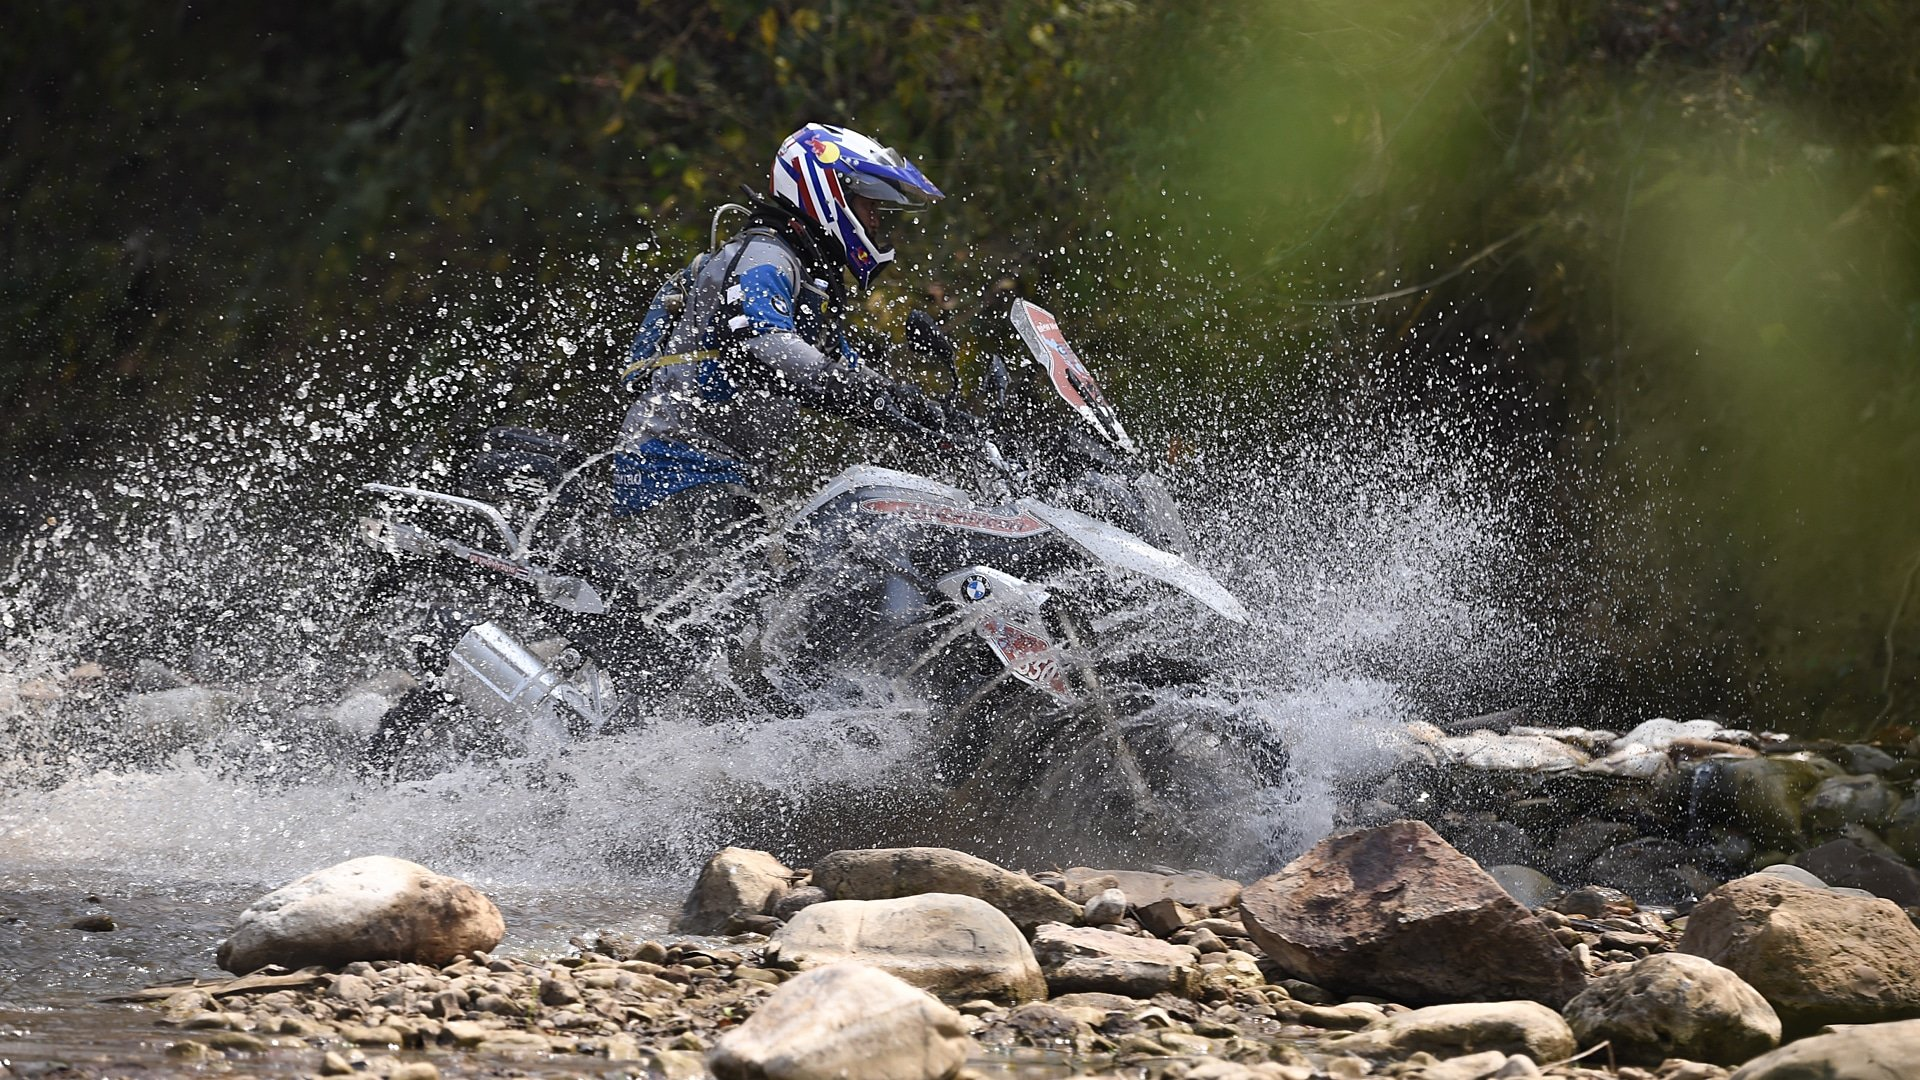 Water crossing during the 2016 BMW Motorrad International GS Trophy.